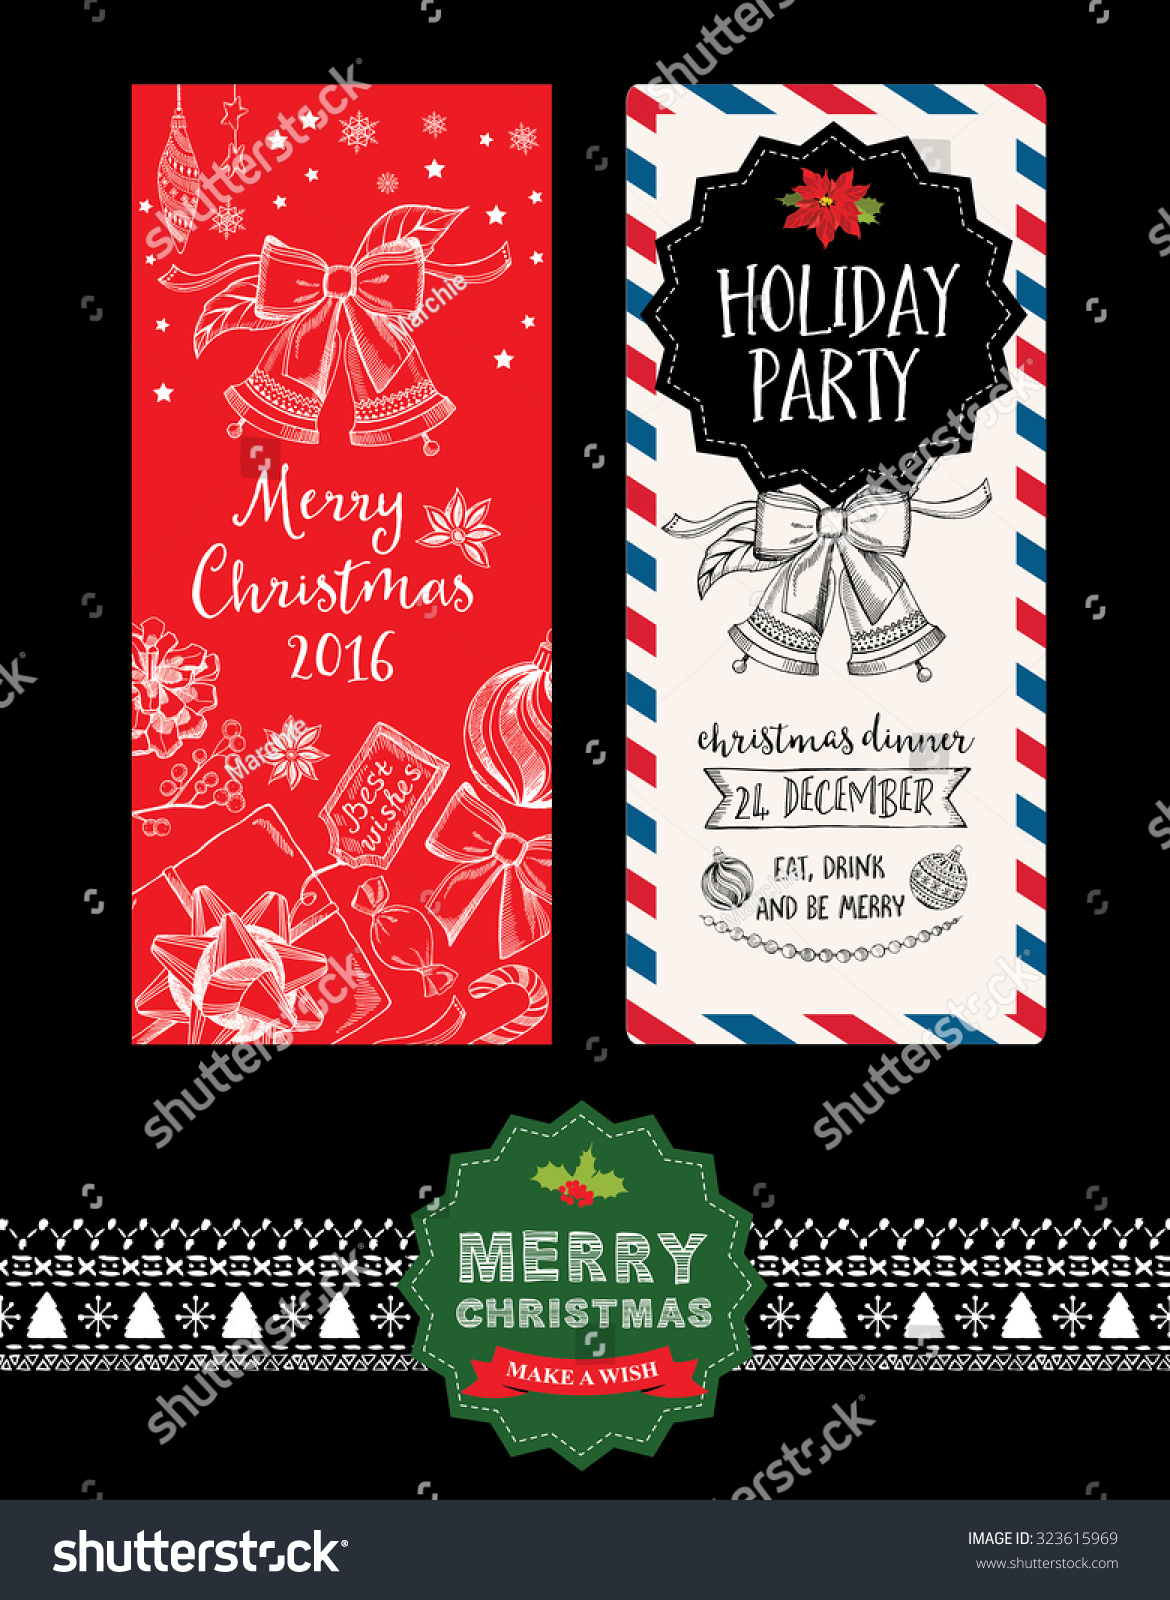 Christmas party invitation Holiday card Vector template with graphic